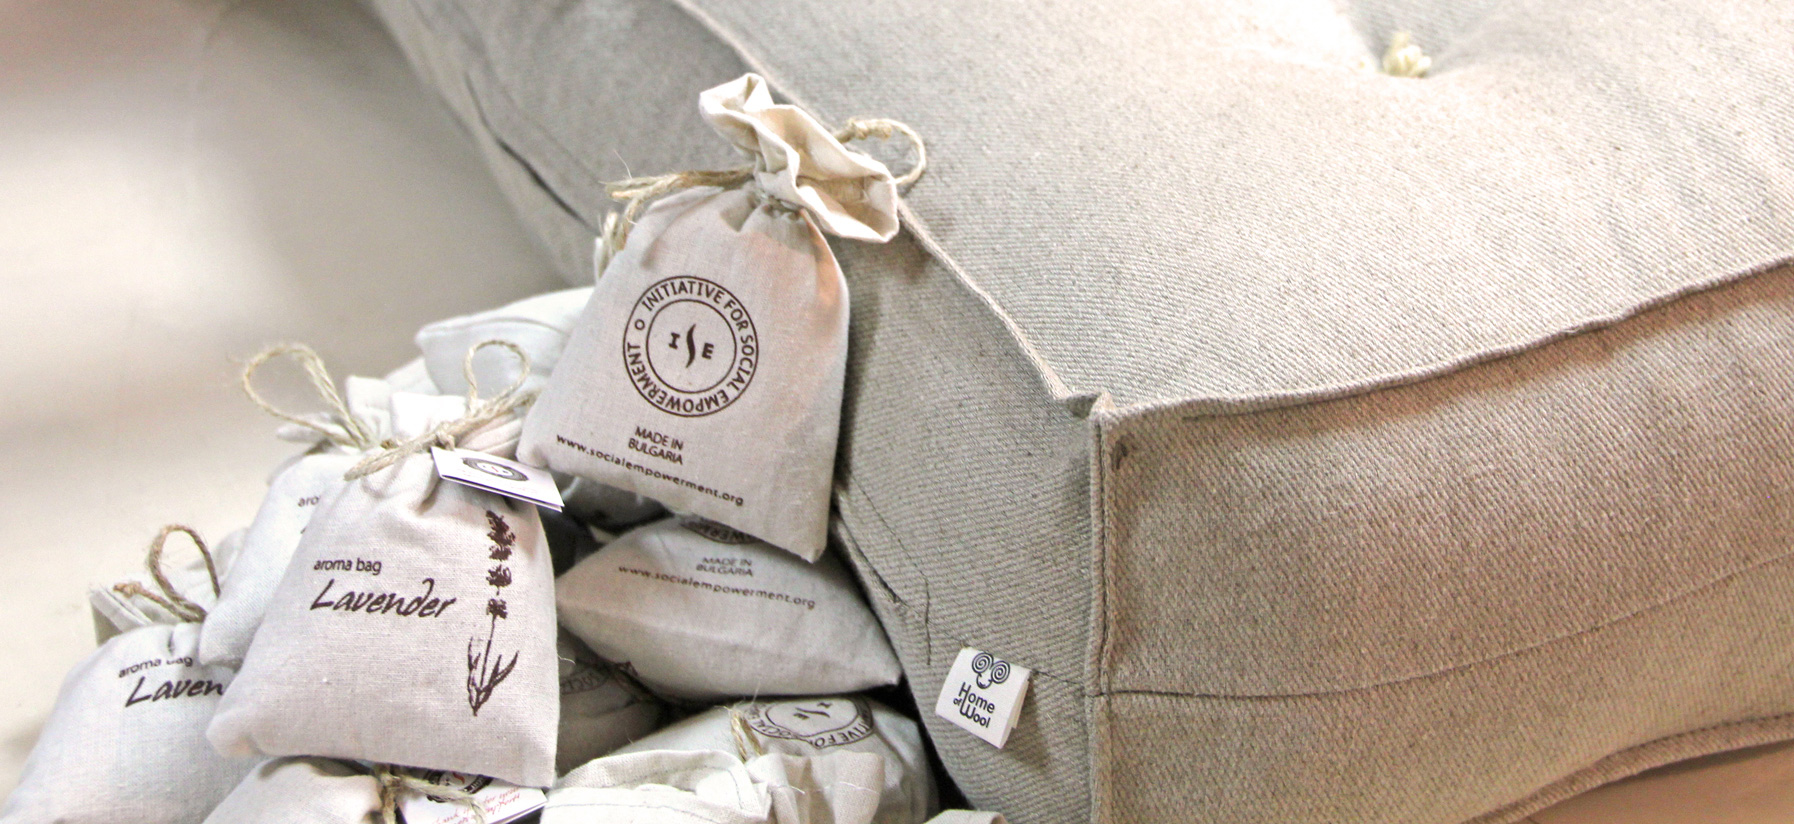 Home of Wool causes ISE lavander bags